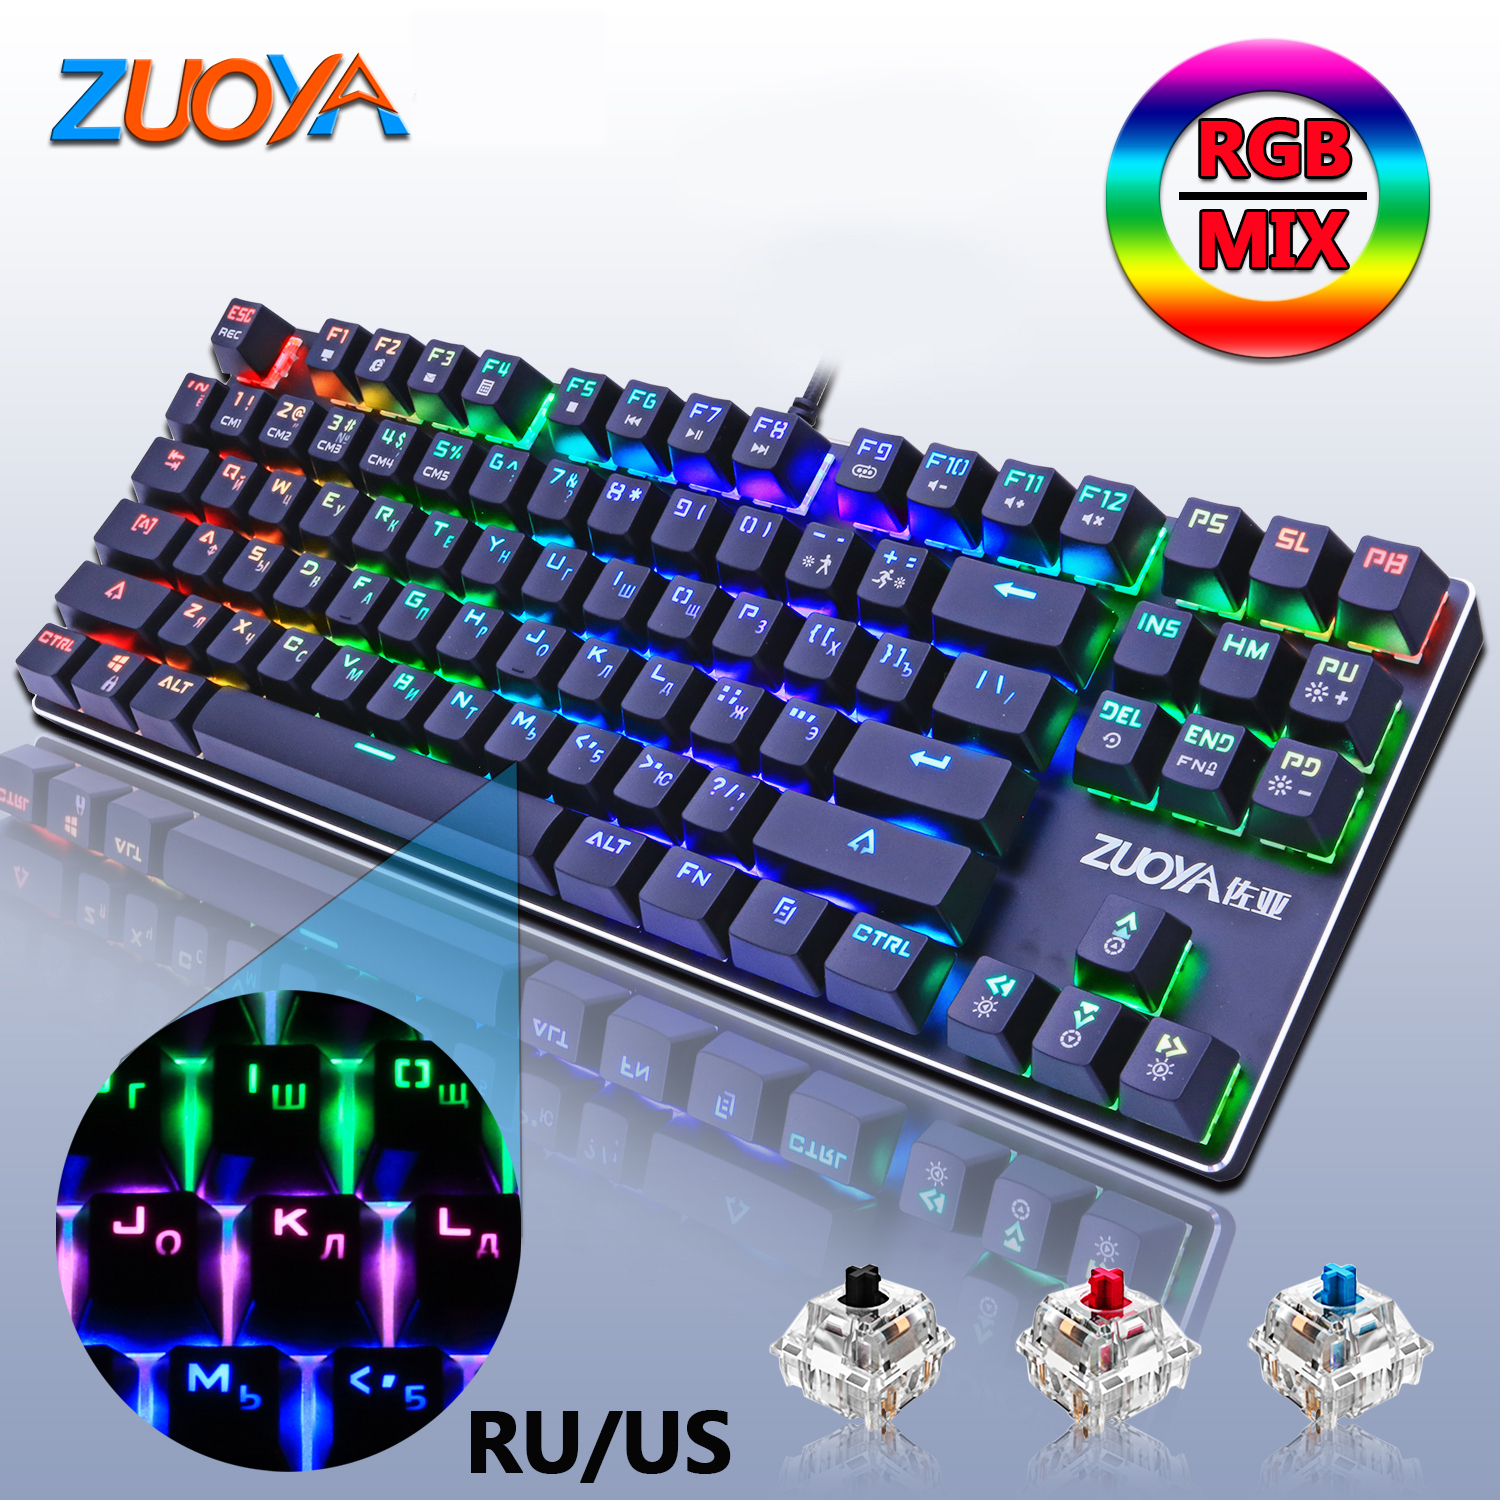 Gaming Mechanical Keyboard Backlit Keyboard Blue Red Switch 87key Anti-ghosting LED USB Wired Russia/US For Gamer PC Laptop